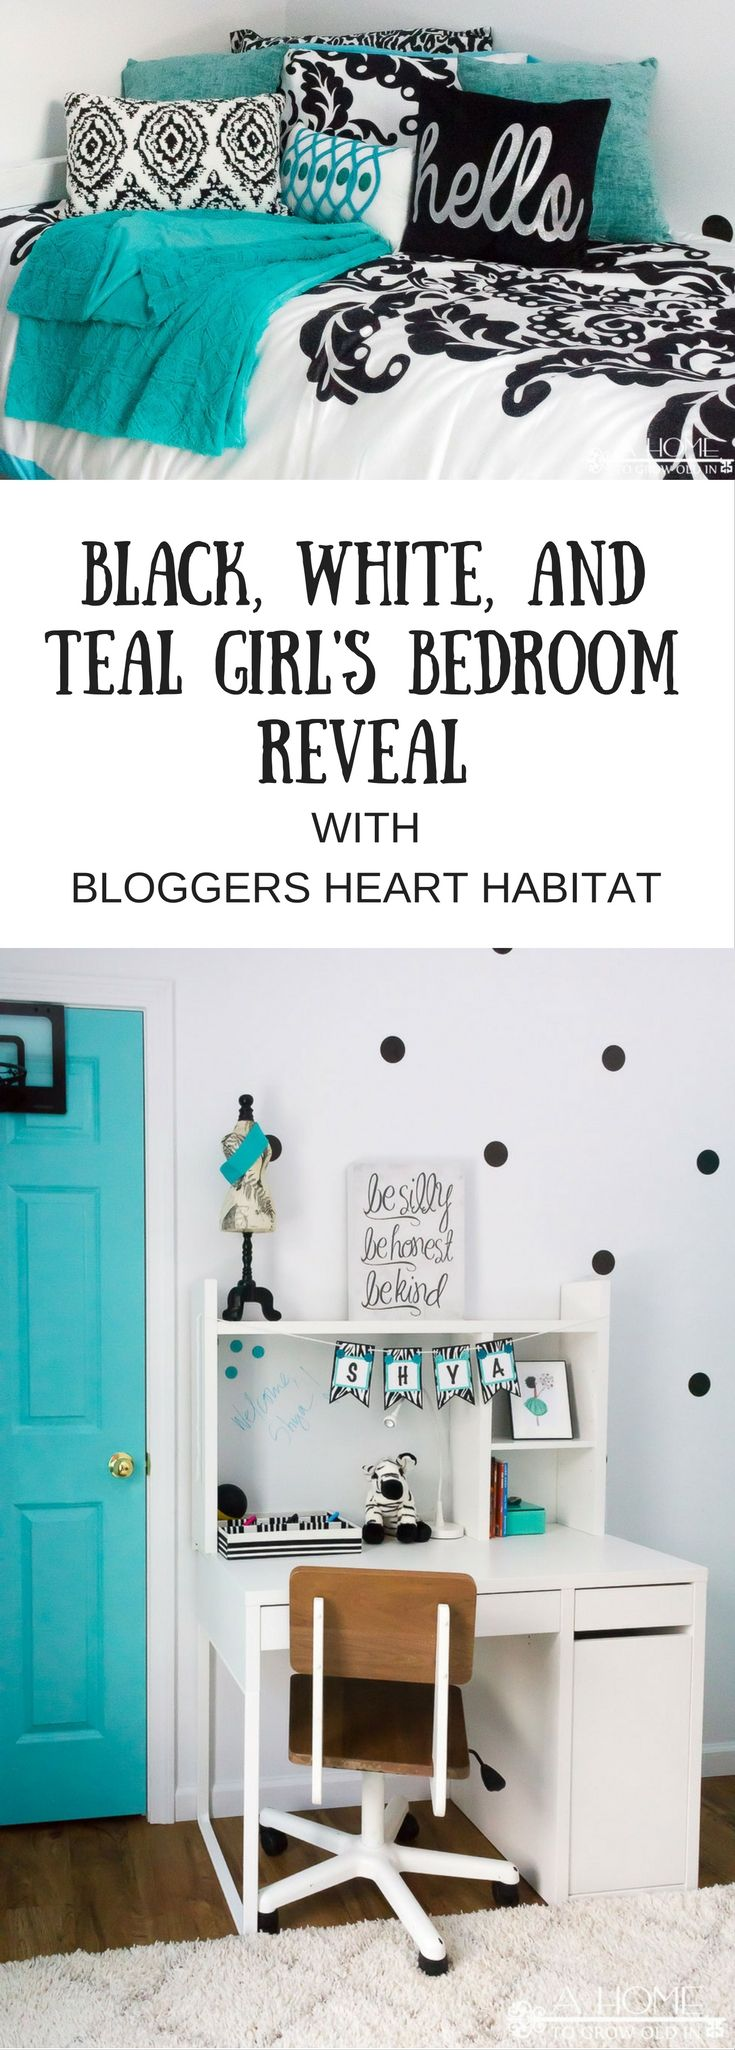 A gorgeous black, white, and teal girl's bedroom reveal with lots of zebra print and polka dots! This is any girl's dream room! Check out this Bloggers Heart Habitat room for a Habitat for Humanity home! via @ahome2growoldin